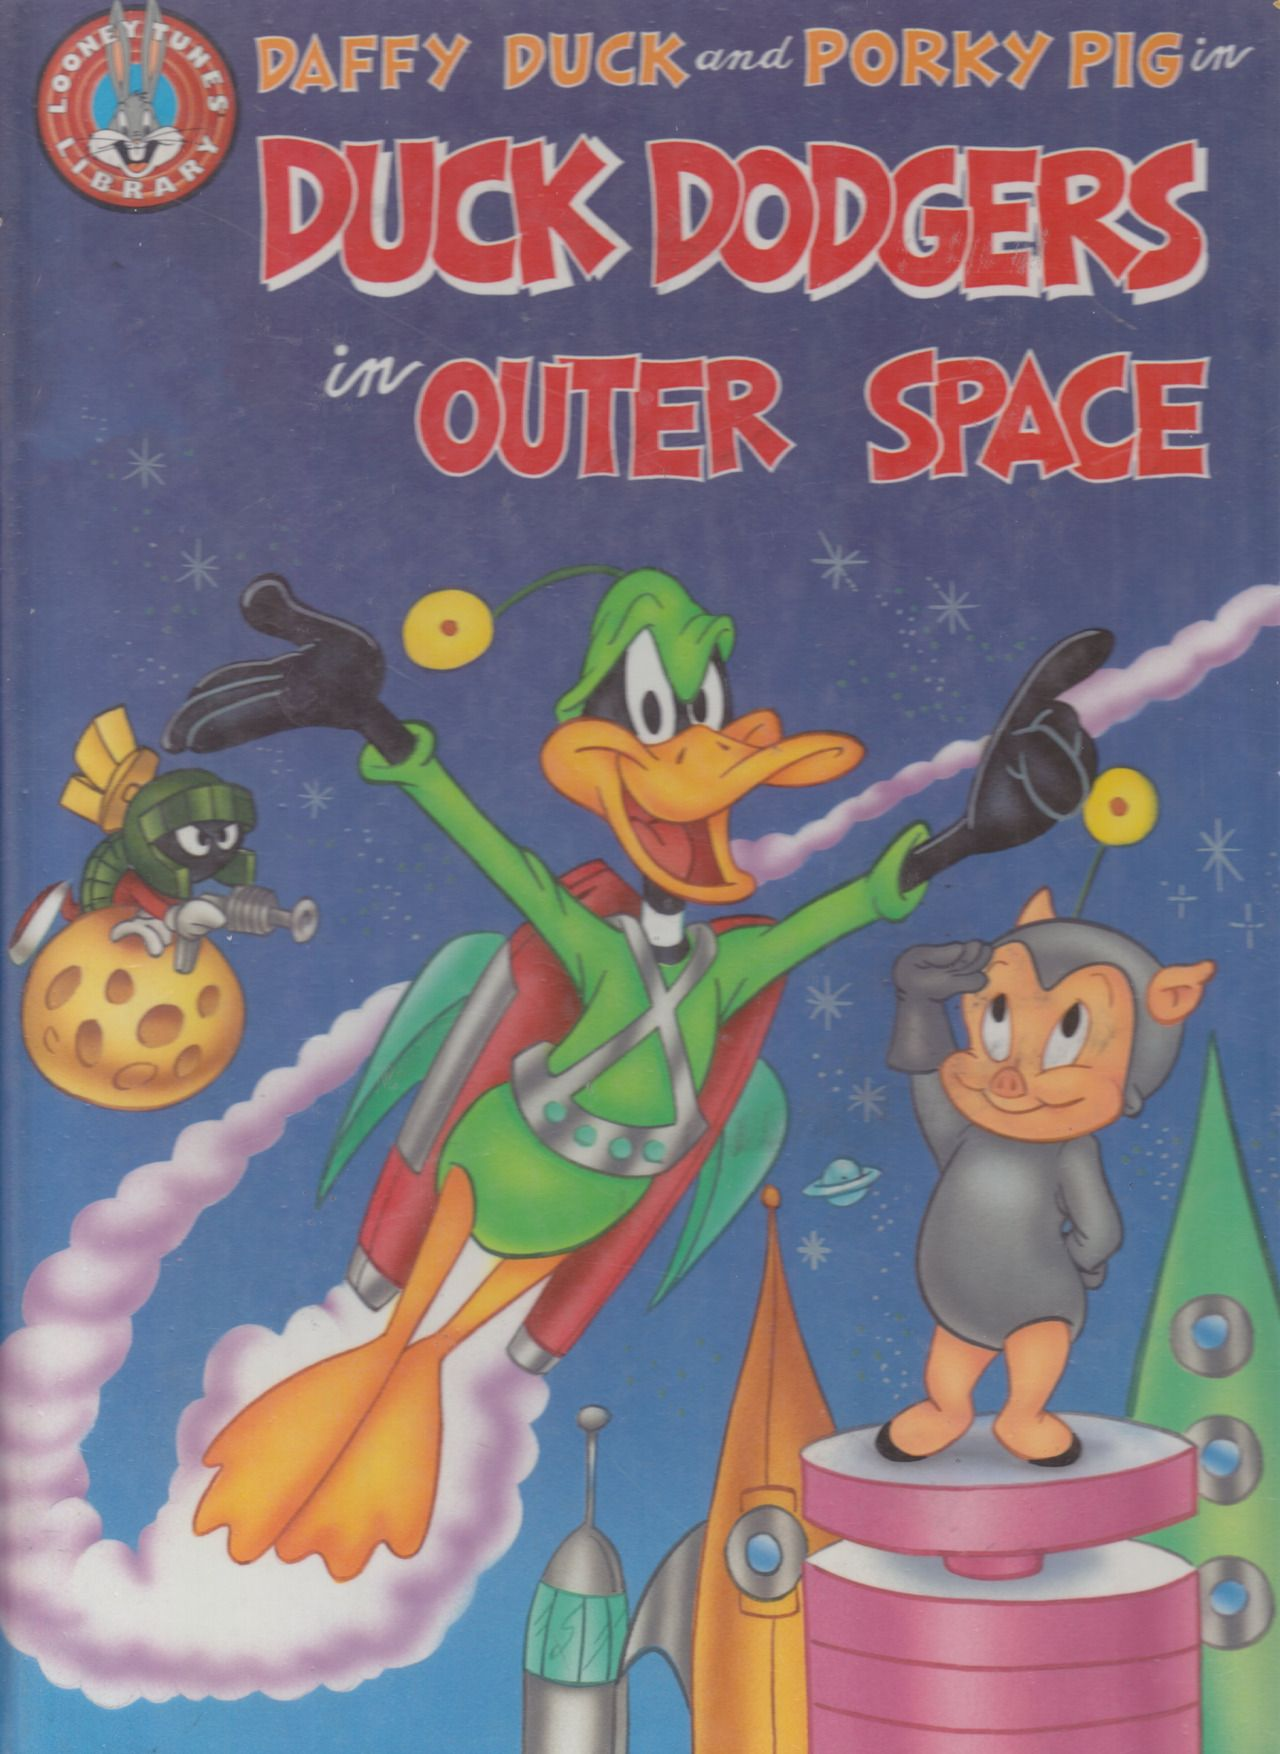 Title Daffy Duck And Porky Pig In Duck Dodgers In Outer Spaceseries